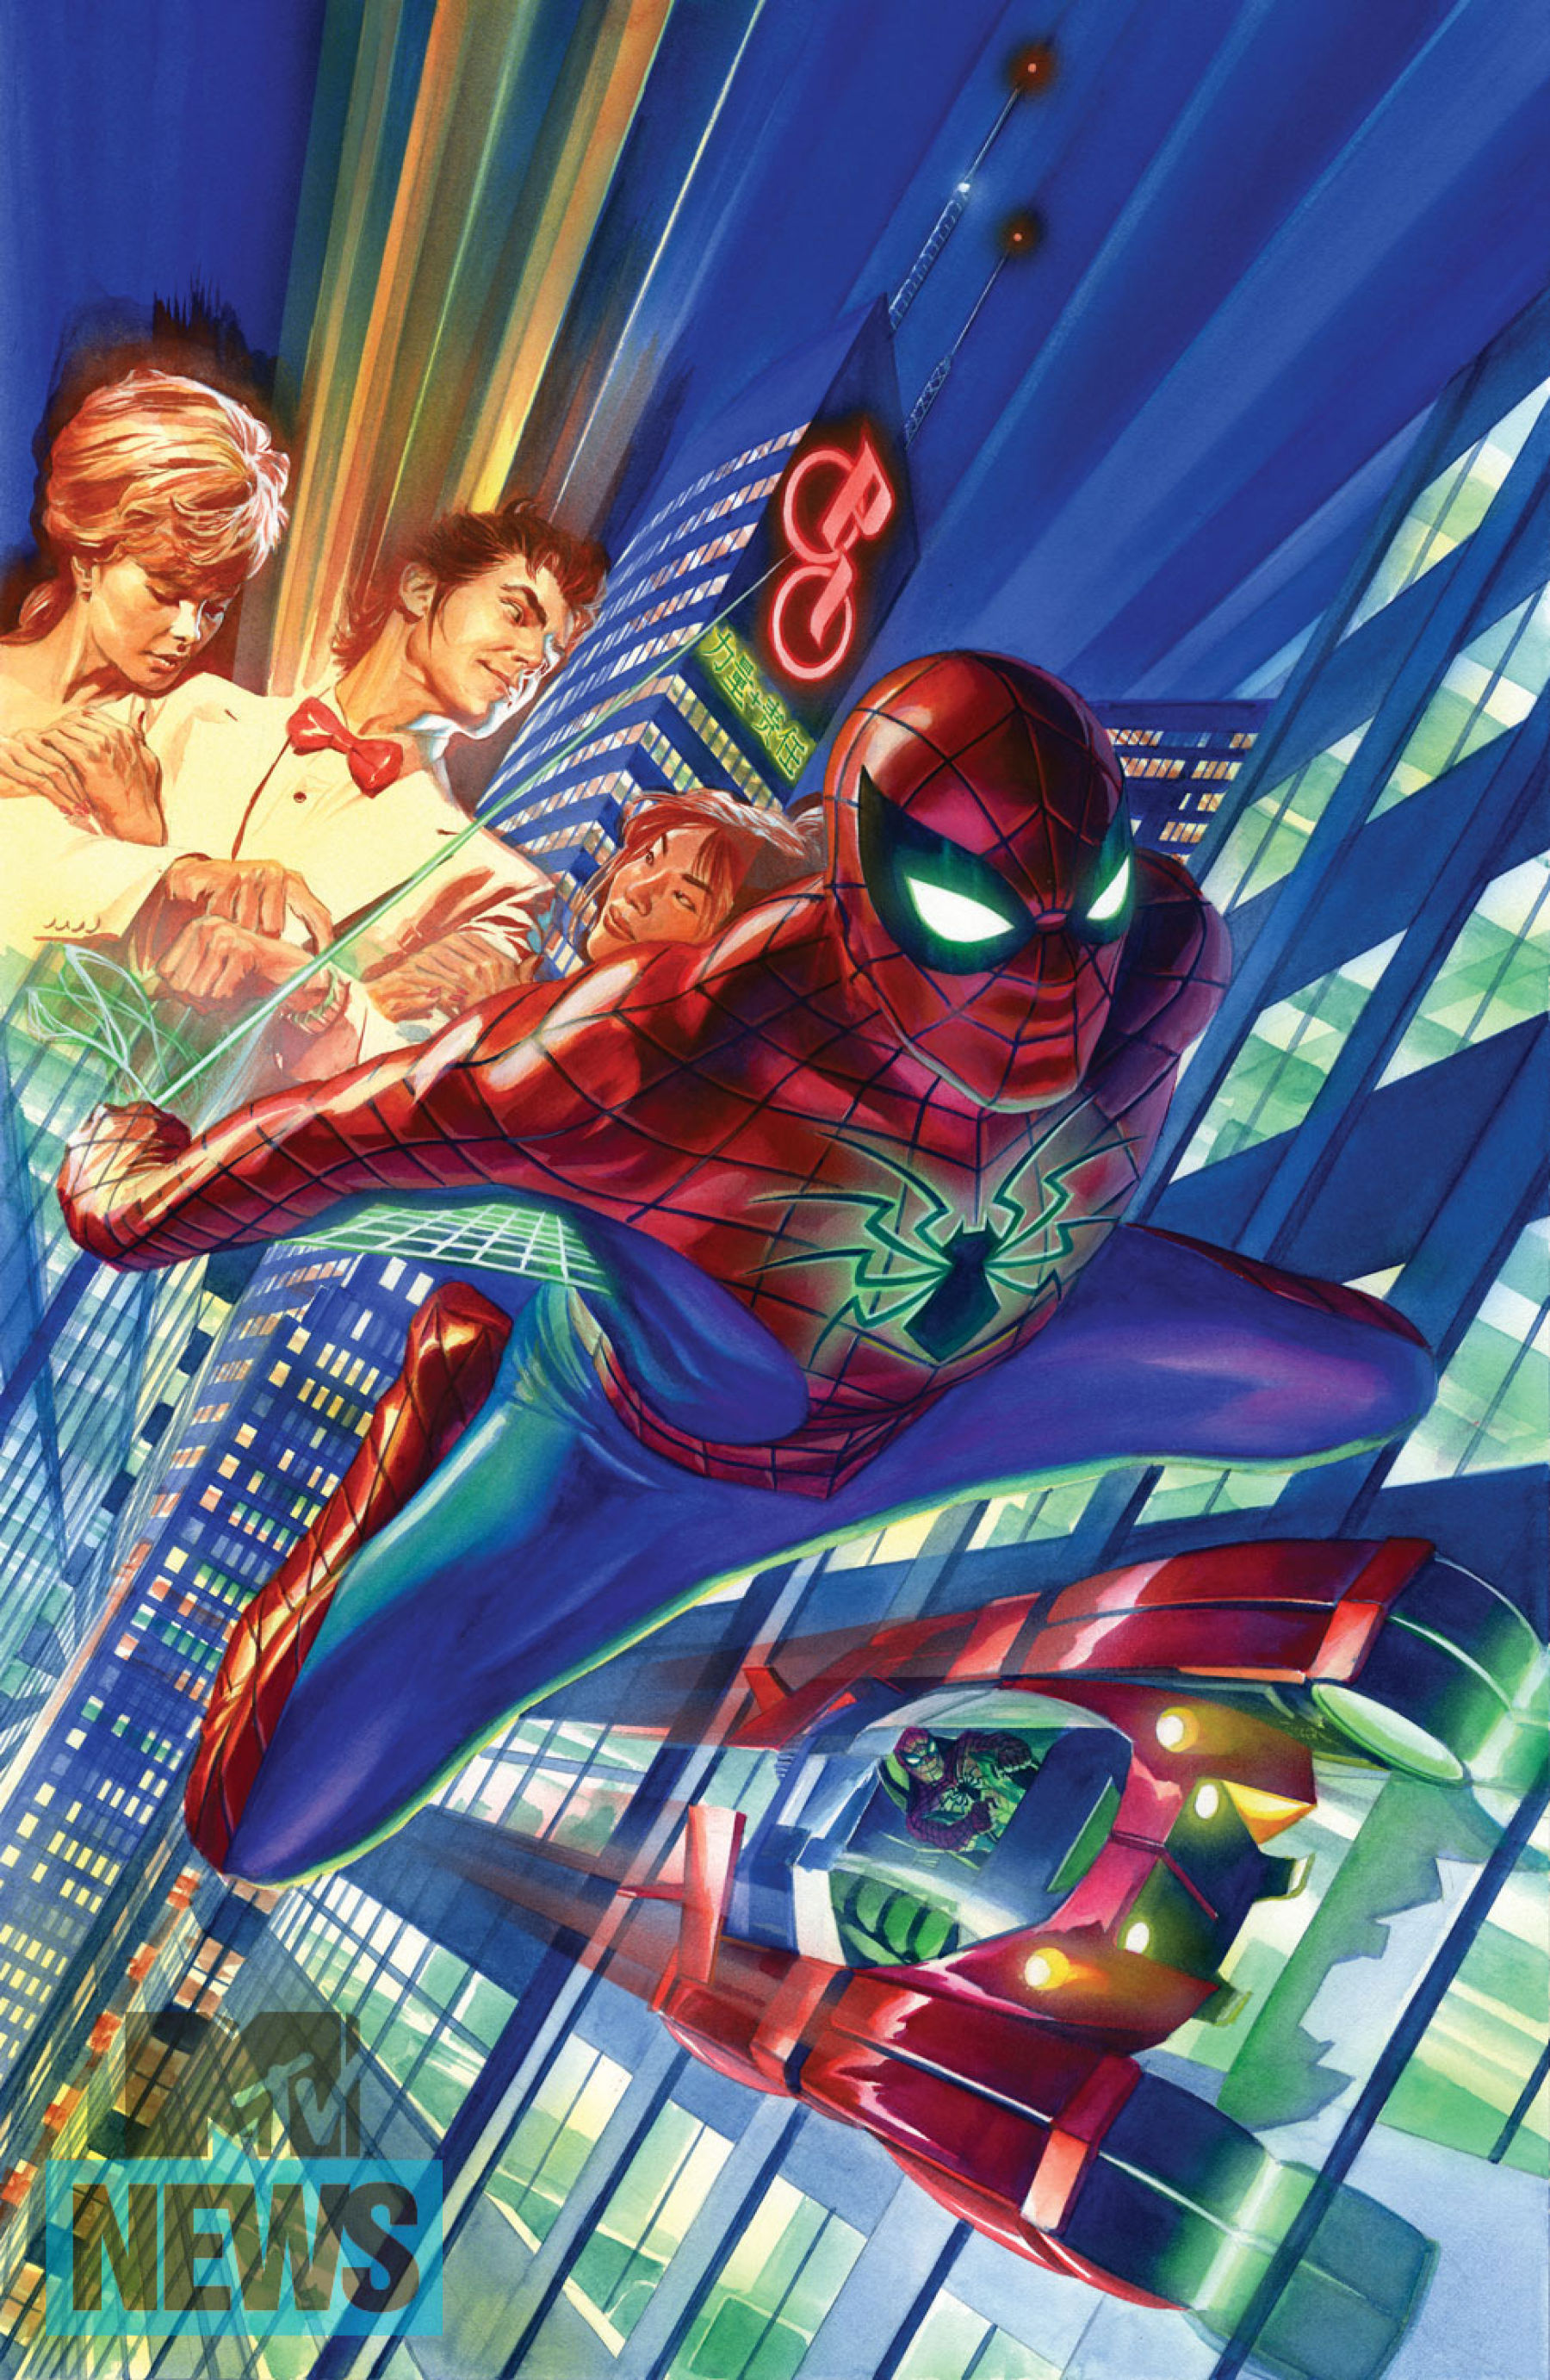 Check Out The All New All Different Amazing Spider Man